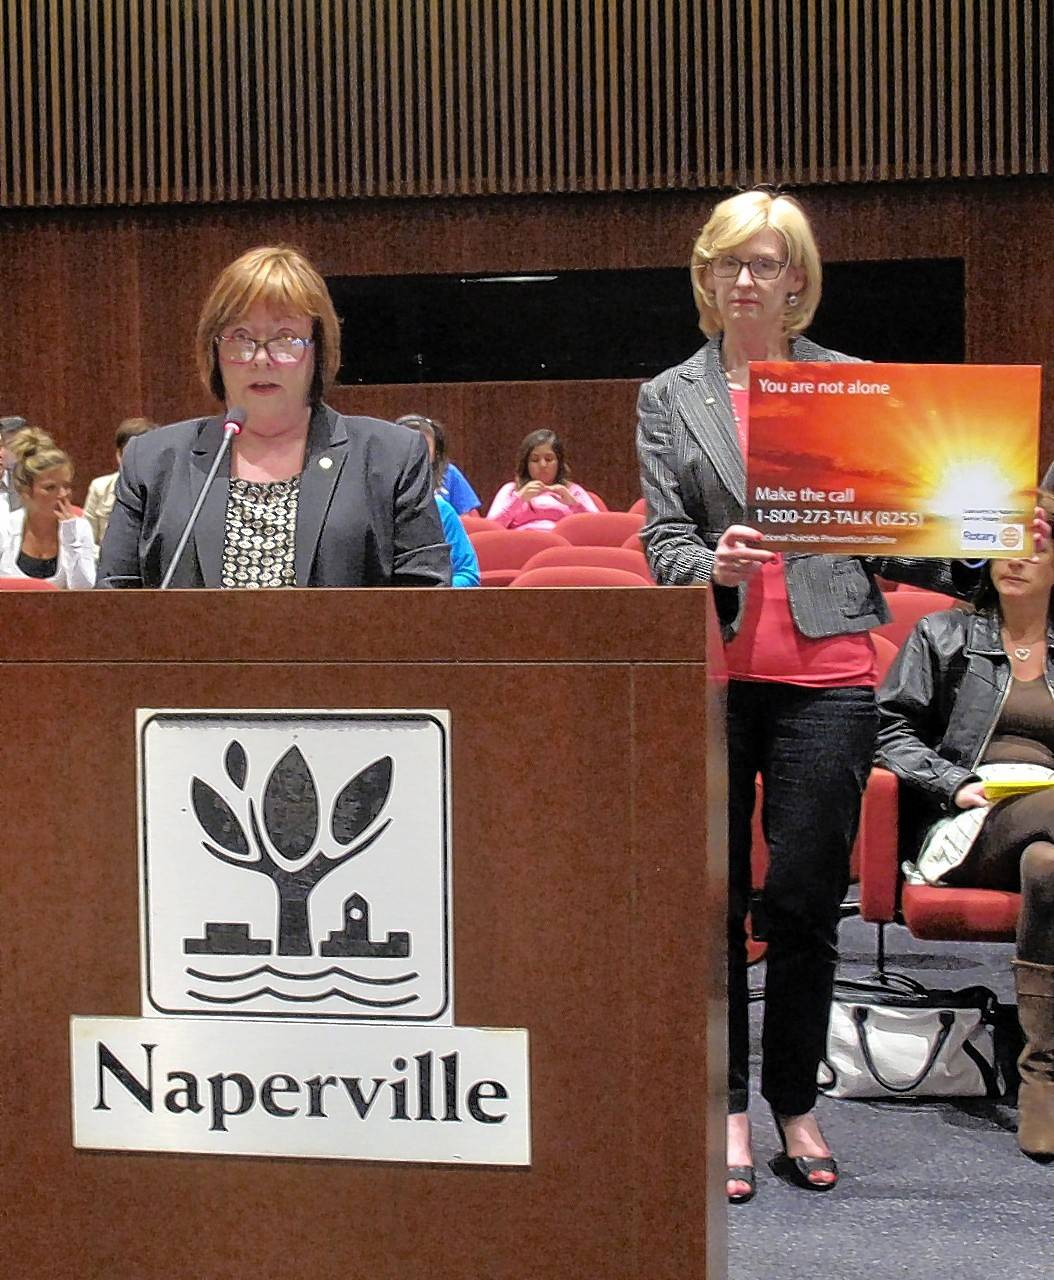 Dr. Caroline Morrison discusses the Rotary Club of Naperville Sunrise's campaign to post suicide prevention signs at the Naperville 5th Avenue Metra station while club member Cathy Goulet shows one of the signs to Naperville City Council members.